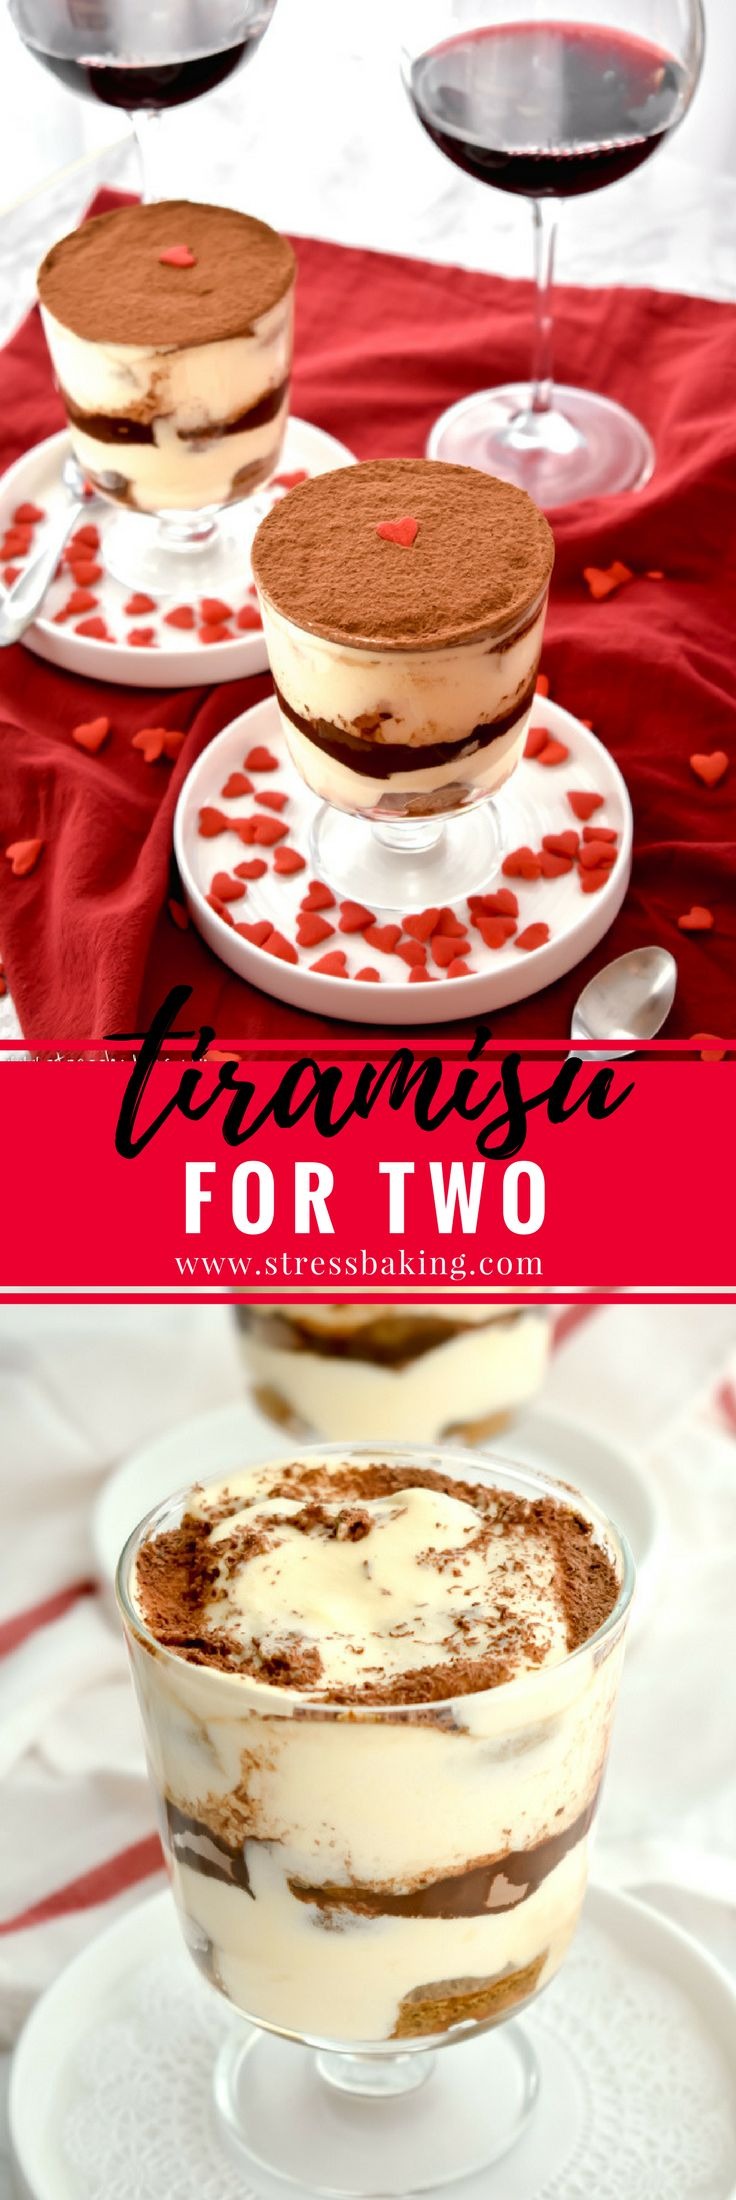 Tiramisu for Two: Creamy, rich layers bursting with the flavors of espresso and liqueur